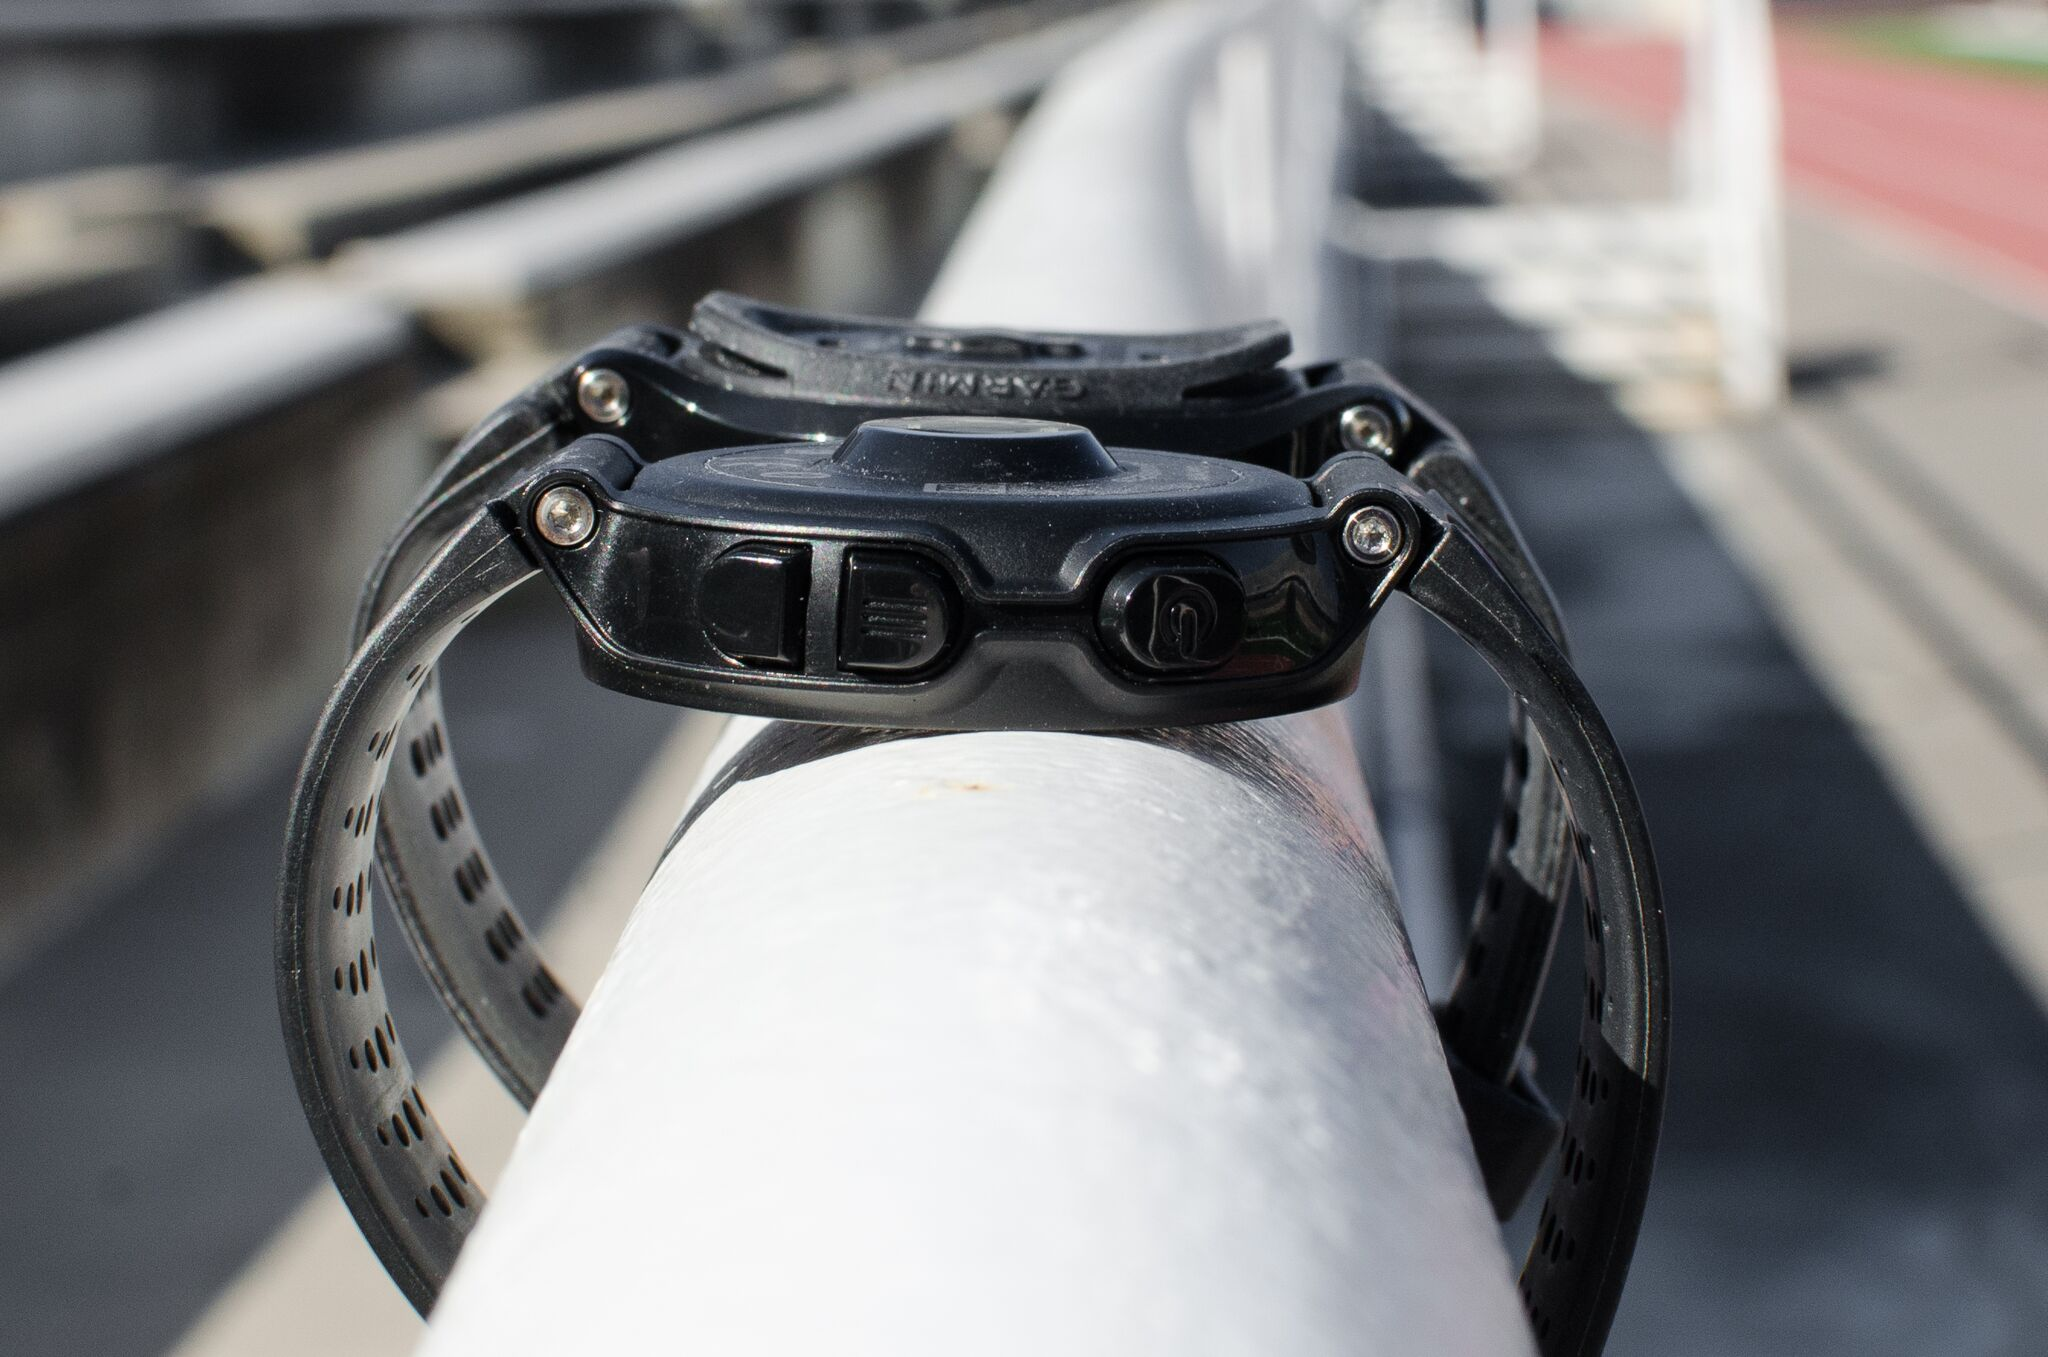 Gear for making outdoor fitness more enjoyable gps running watches 225 garmin forerunners preview